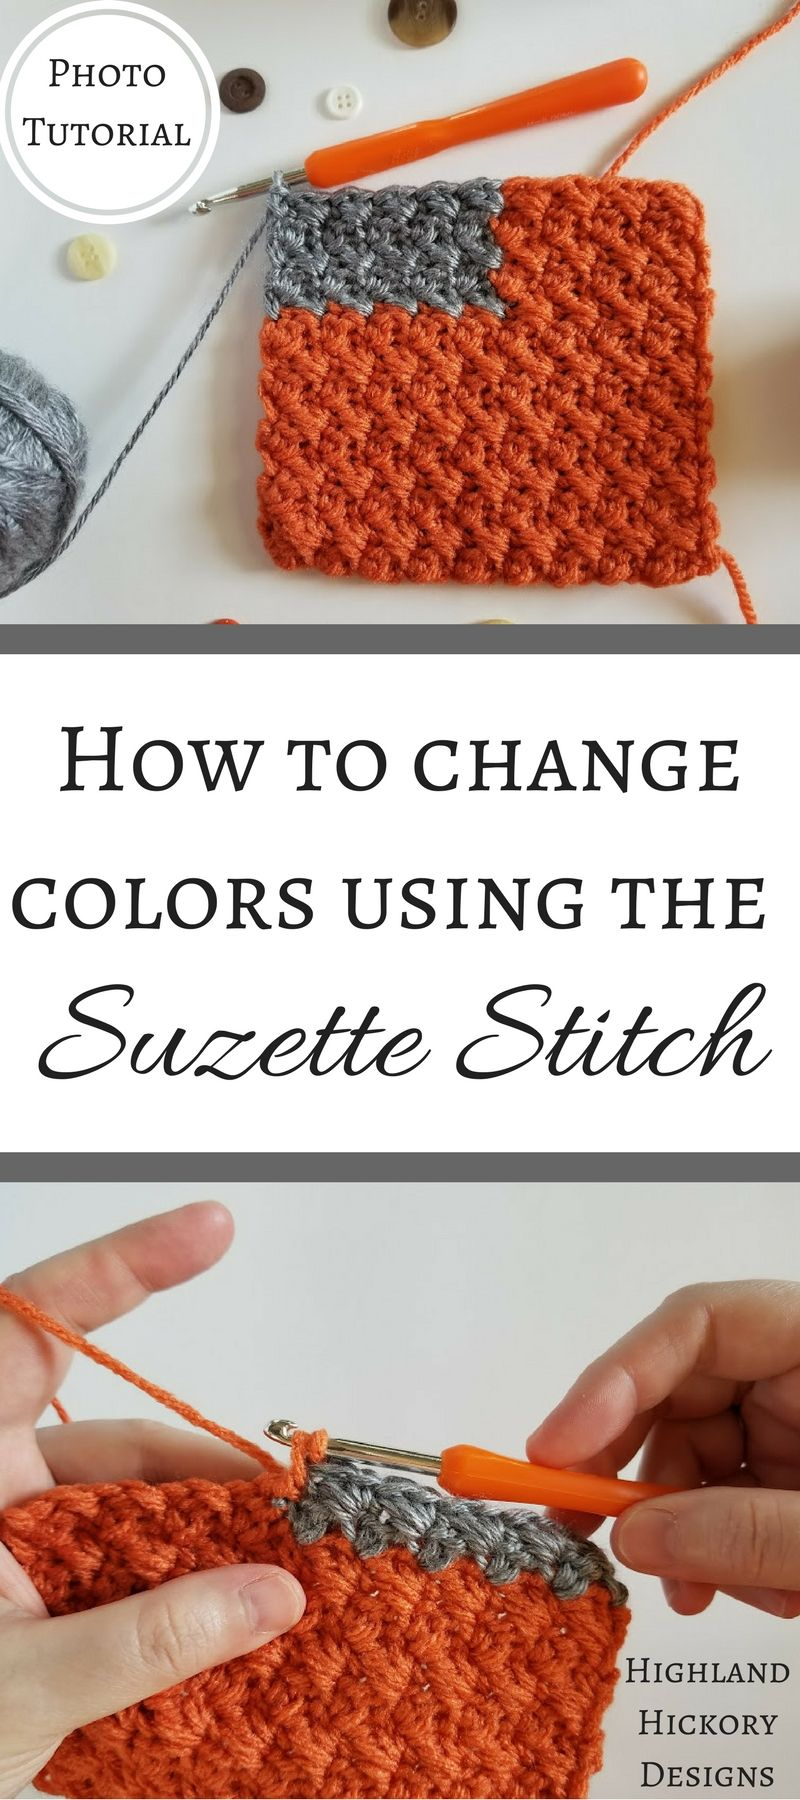 How To Change Colors Using The Suzette Stitch | Puntadas, Tejido y ...